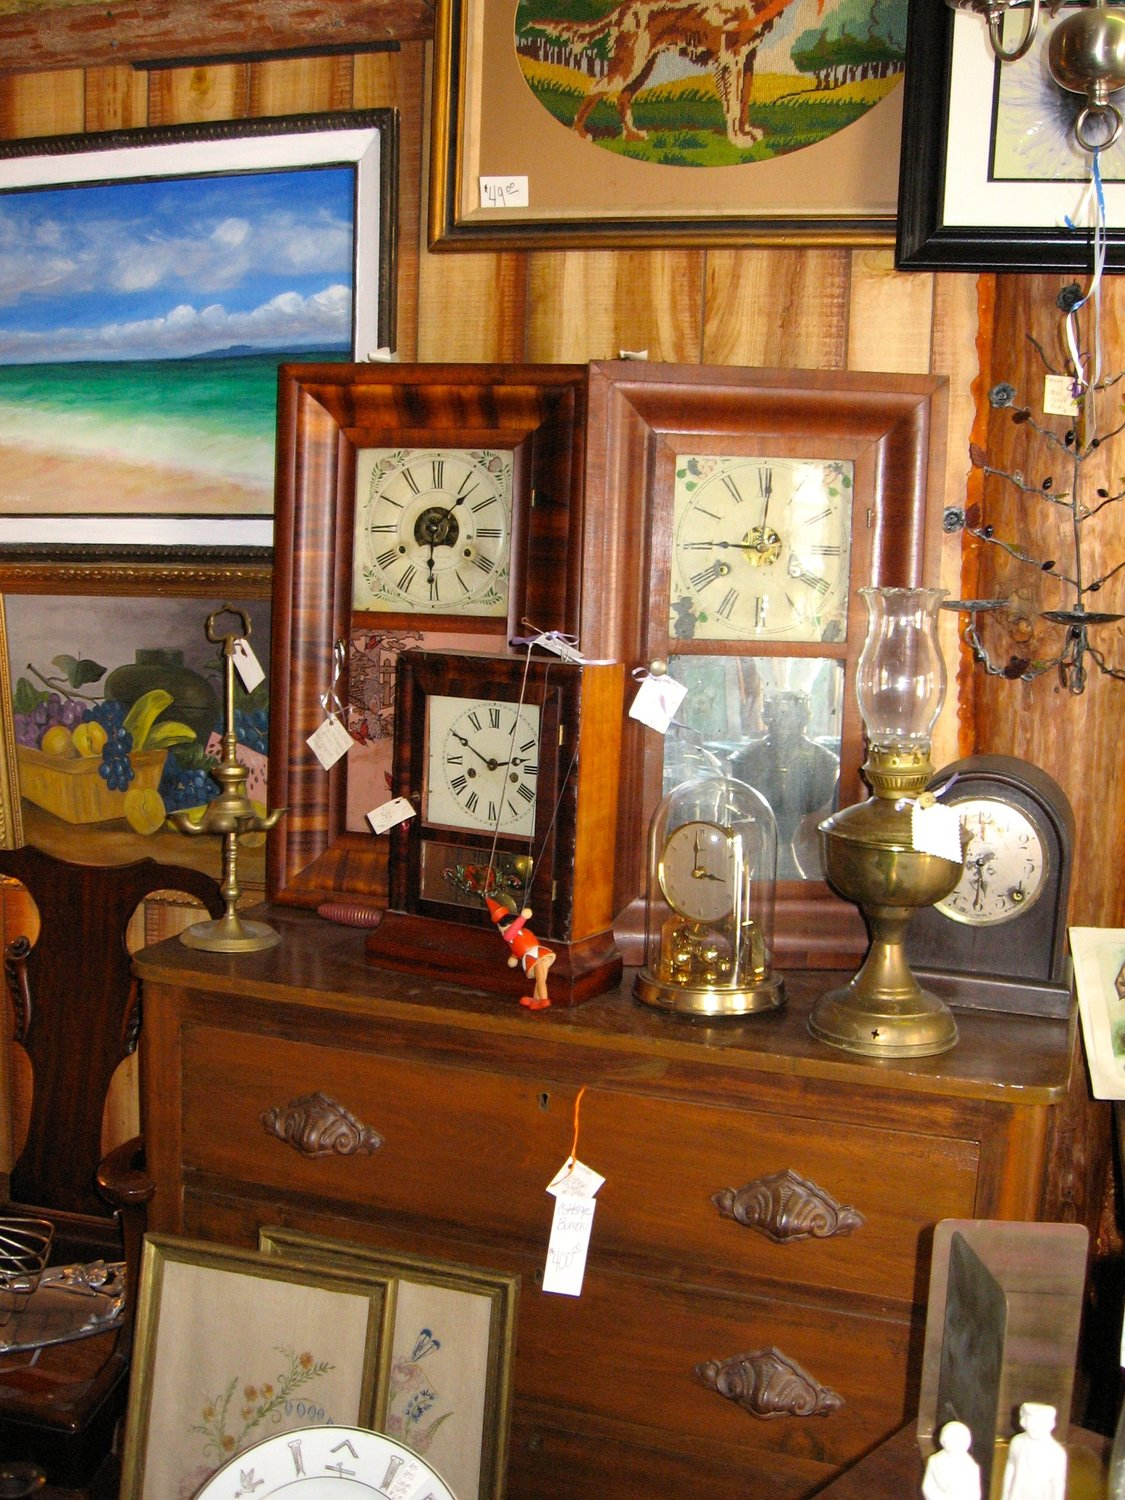 This collection of early 19th century clocks caught the author's eye at Sandspring Antiques and Art in Hawley, PA.